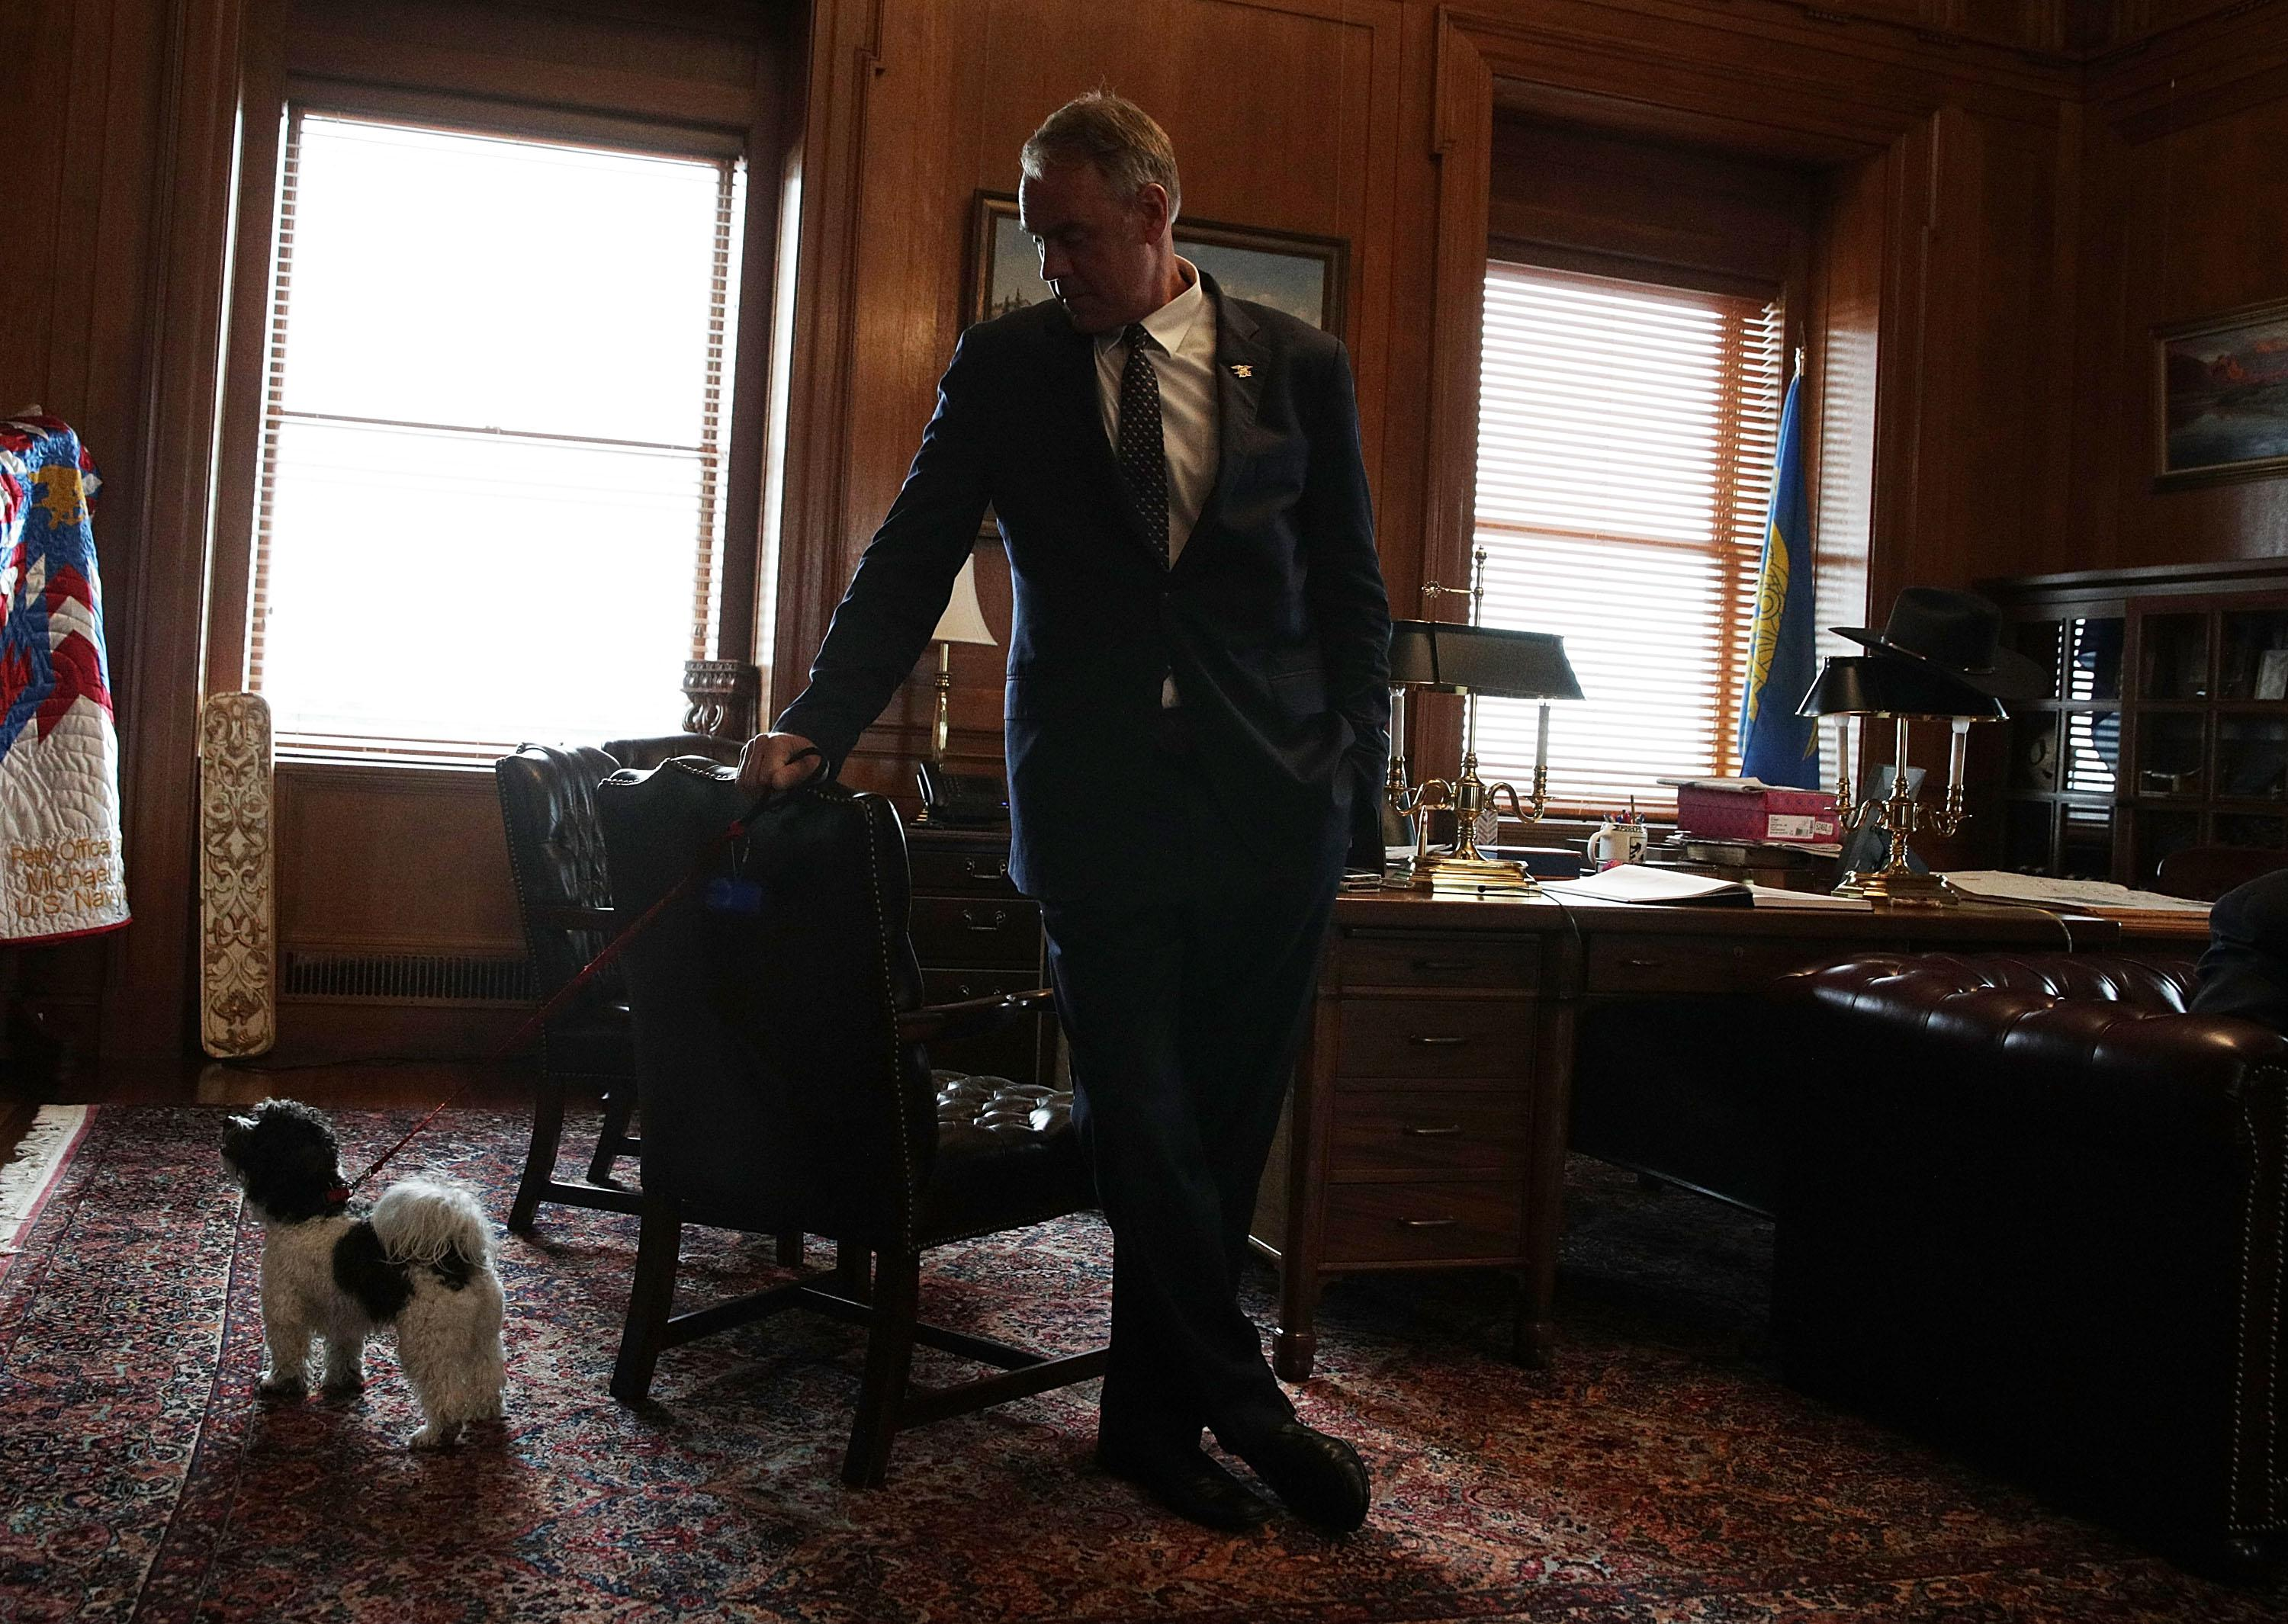 Interior Secretary Ryan Zinke and his dog in his office for a Take Your Dog to Work Day event on May 5, 2017 at the Interior Department in Washington, DC.